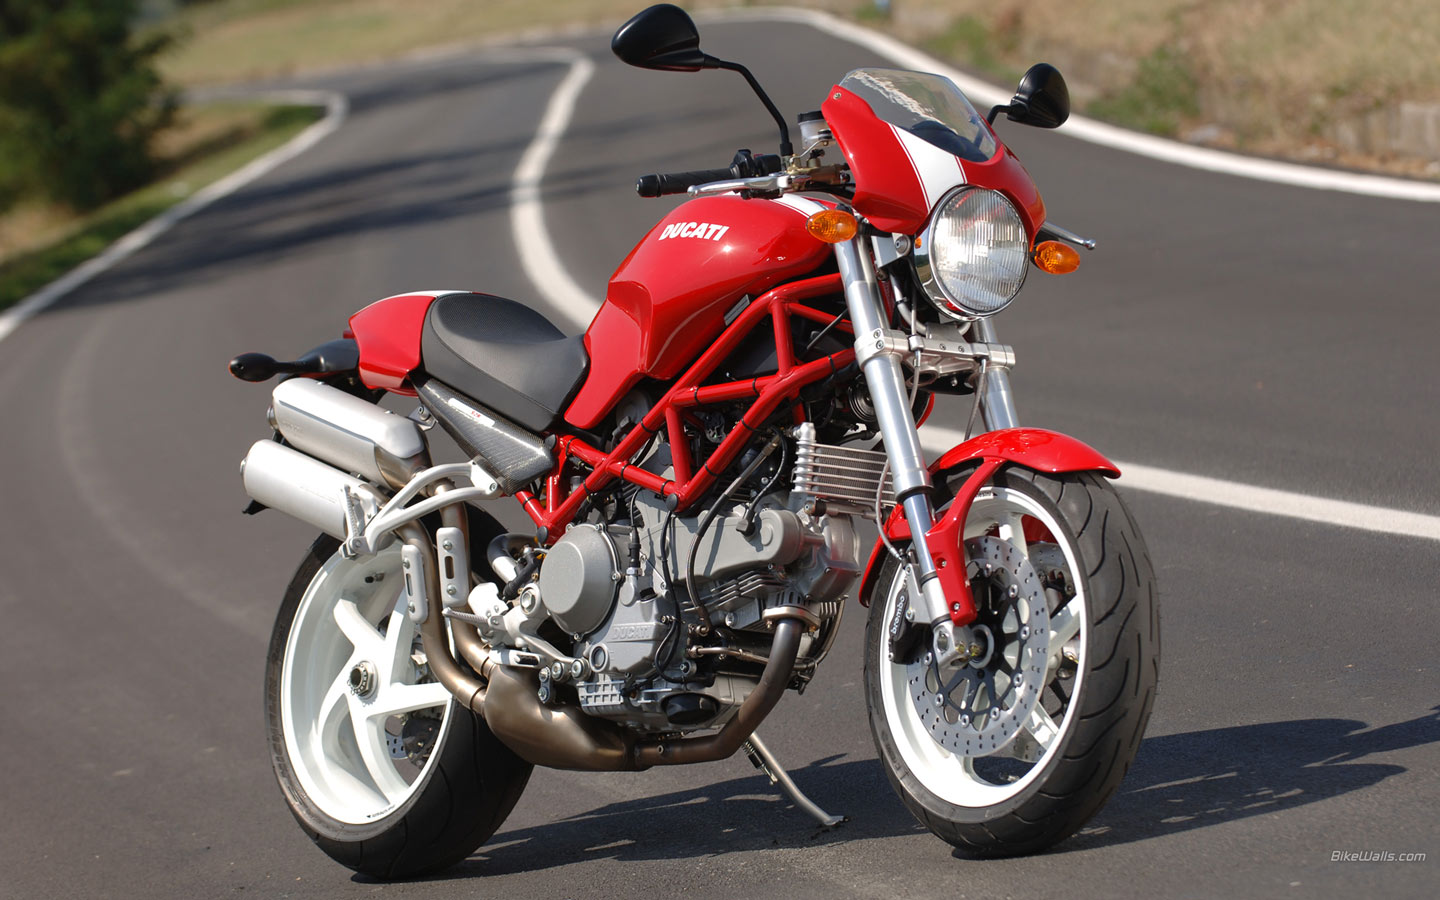 Ducati 900 Monster S 1998 images #78790